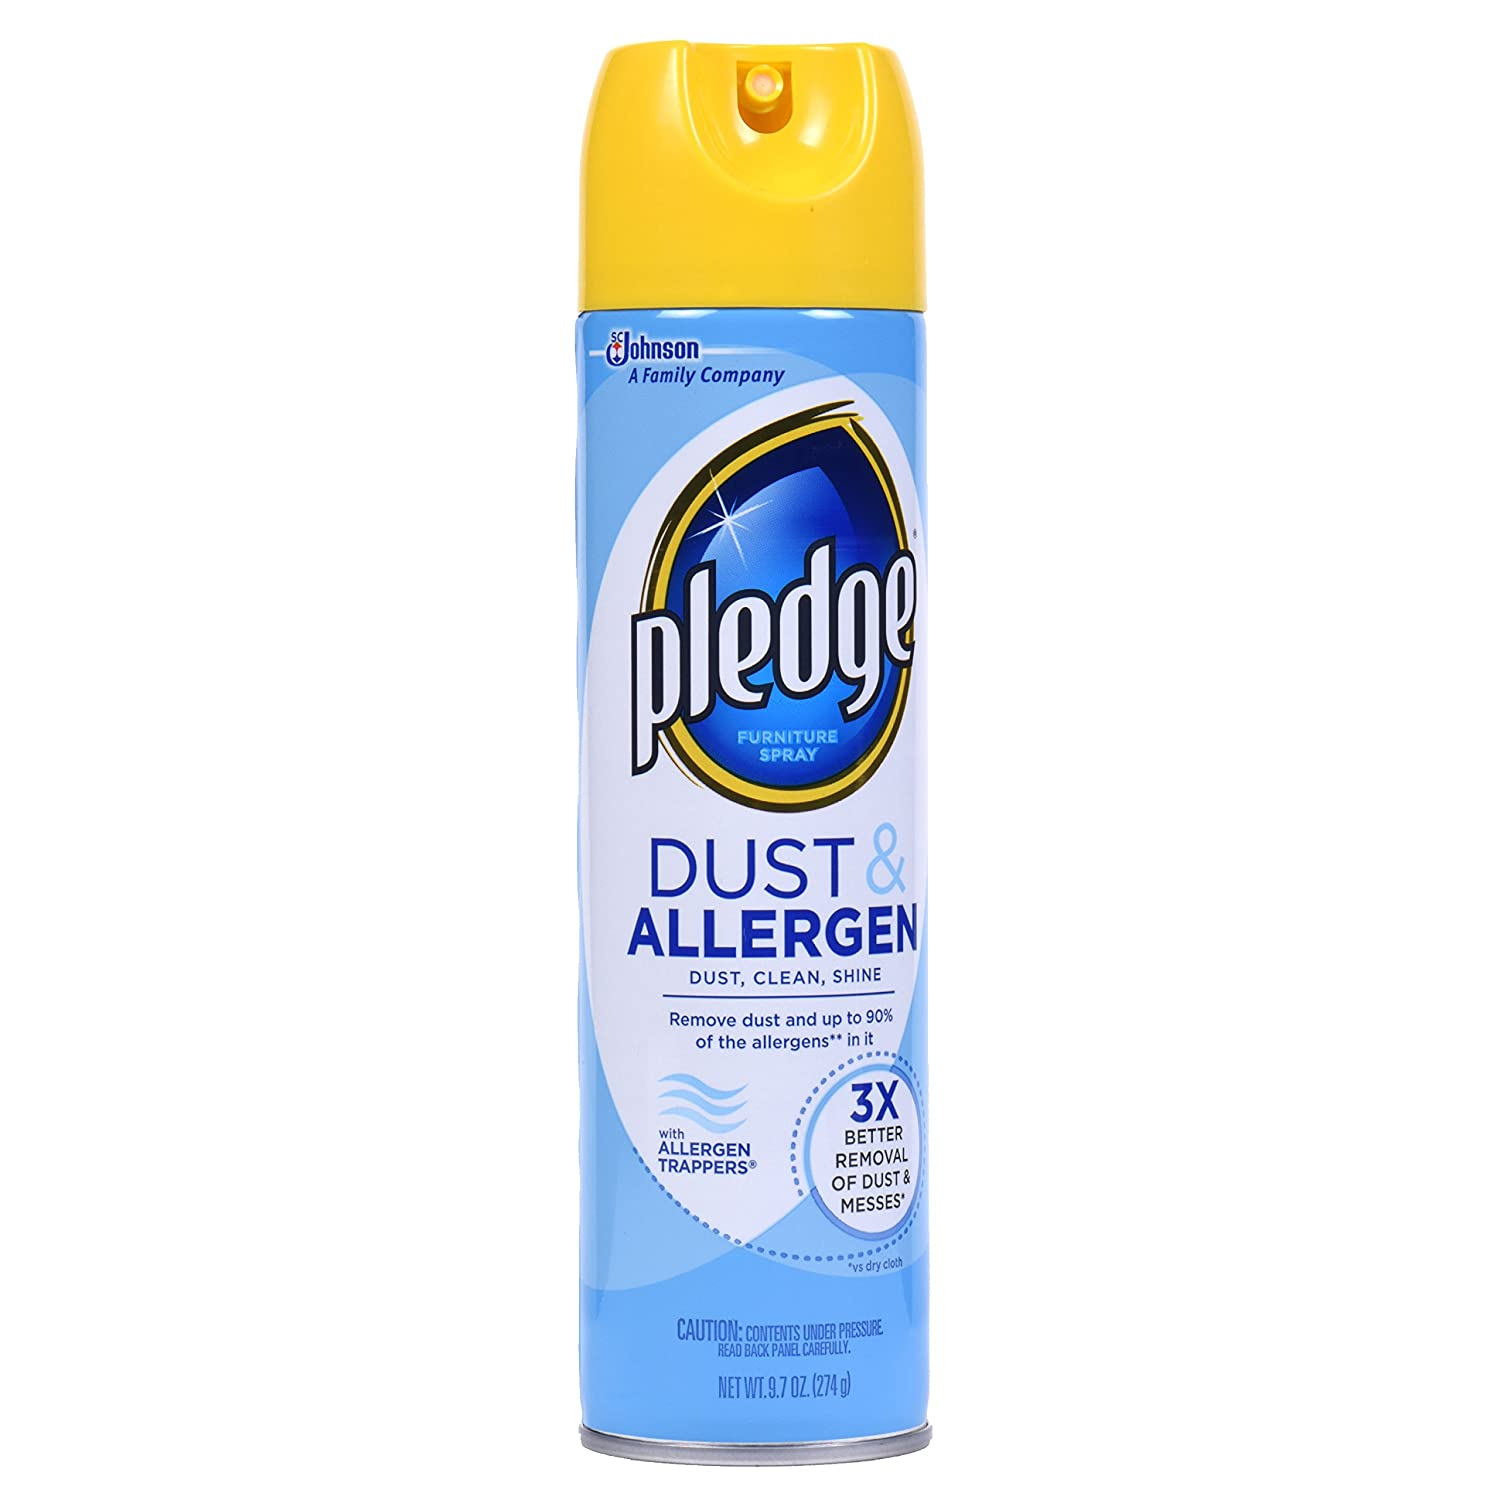 dusting wood furniture. amazoncom pledge dust and allergen furniture spray 97 ounce pack of 3 health u0026 personal care dusting wood u